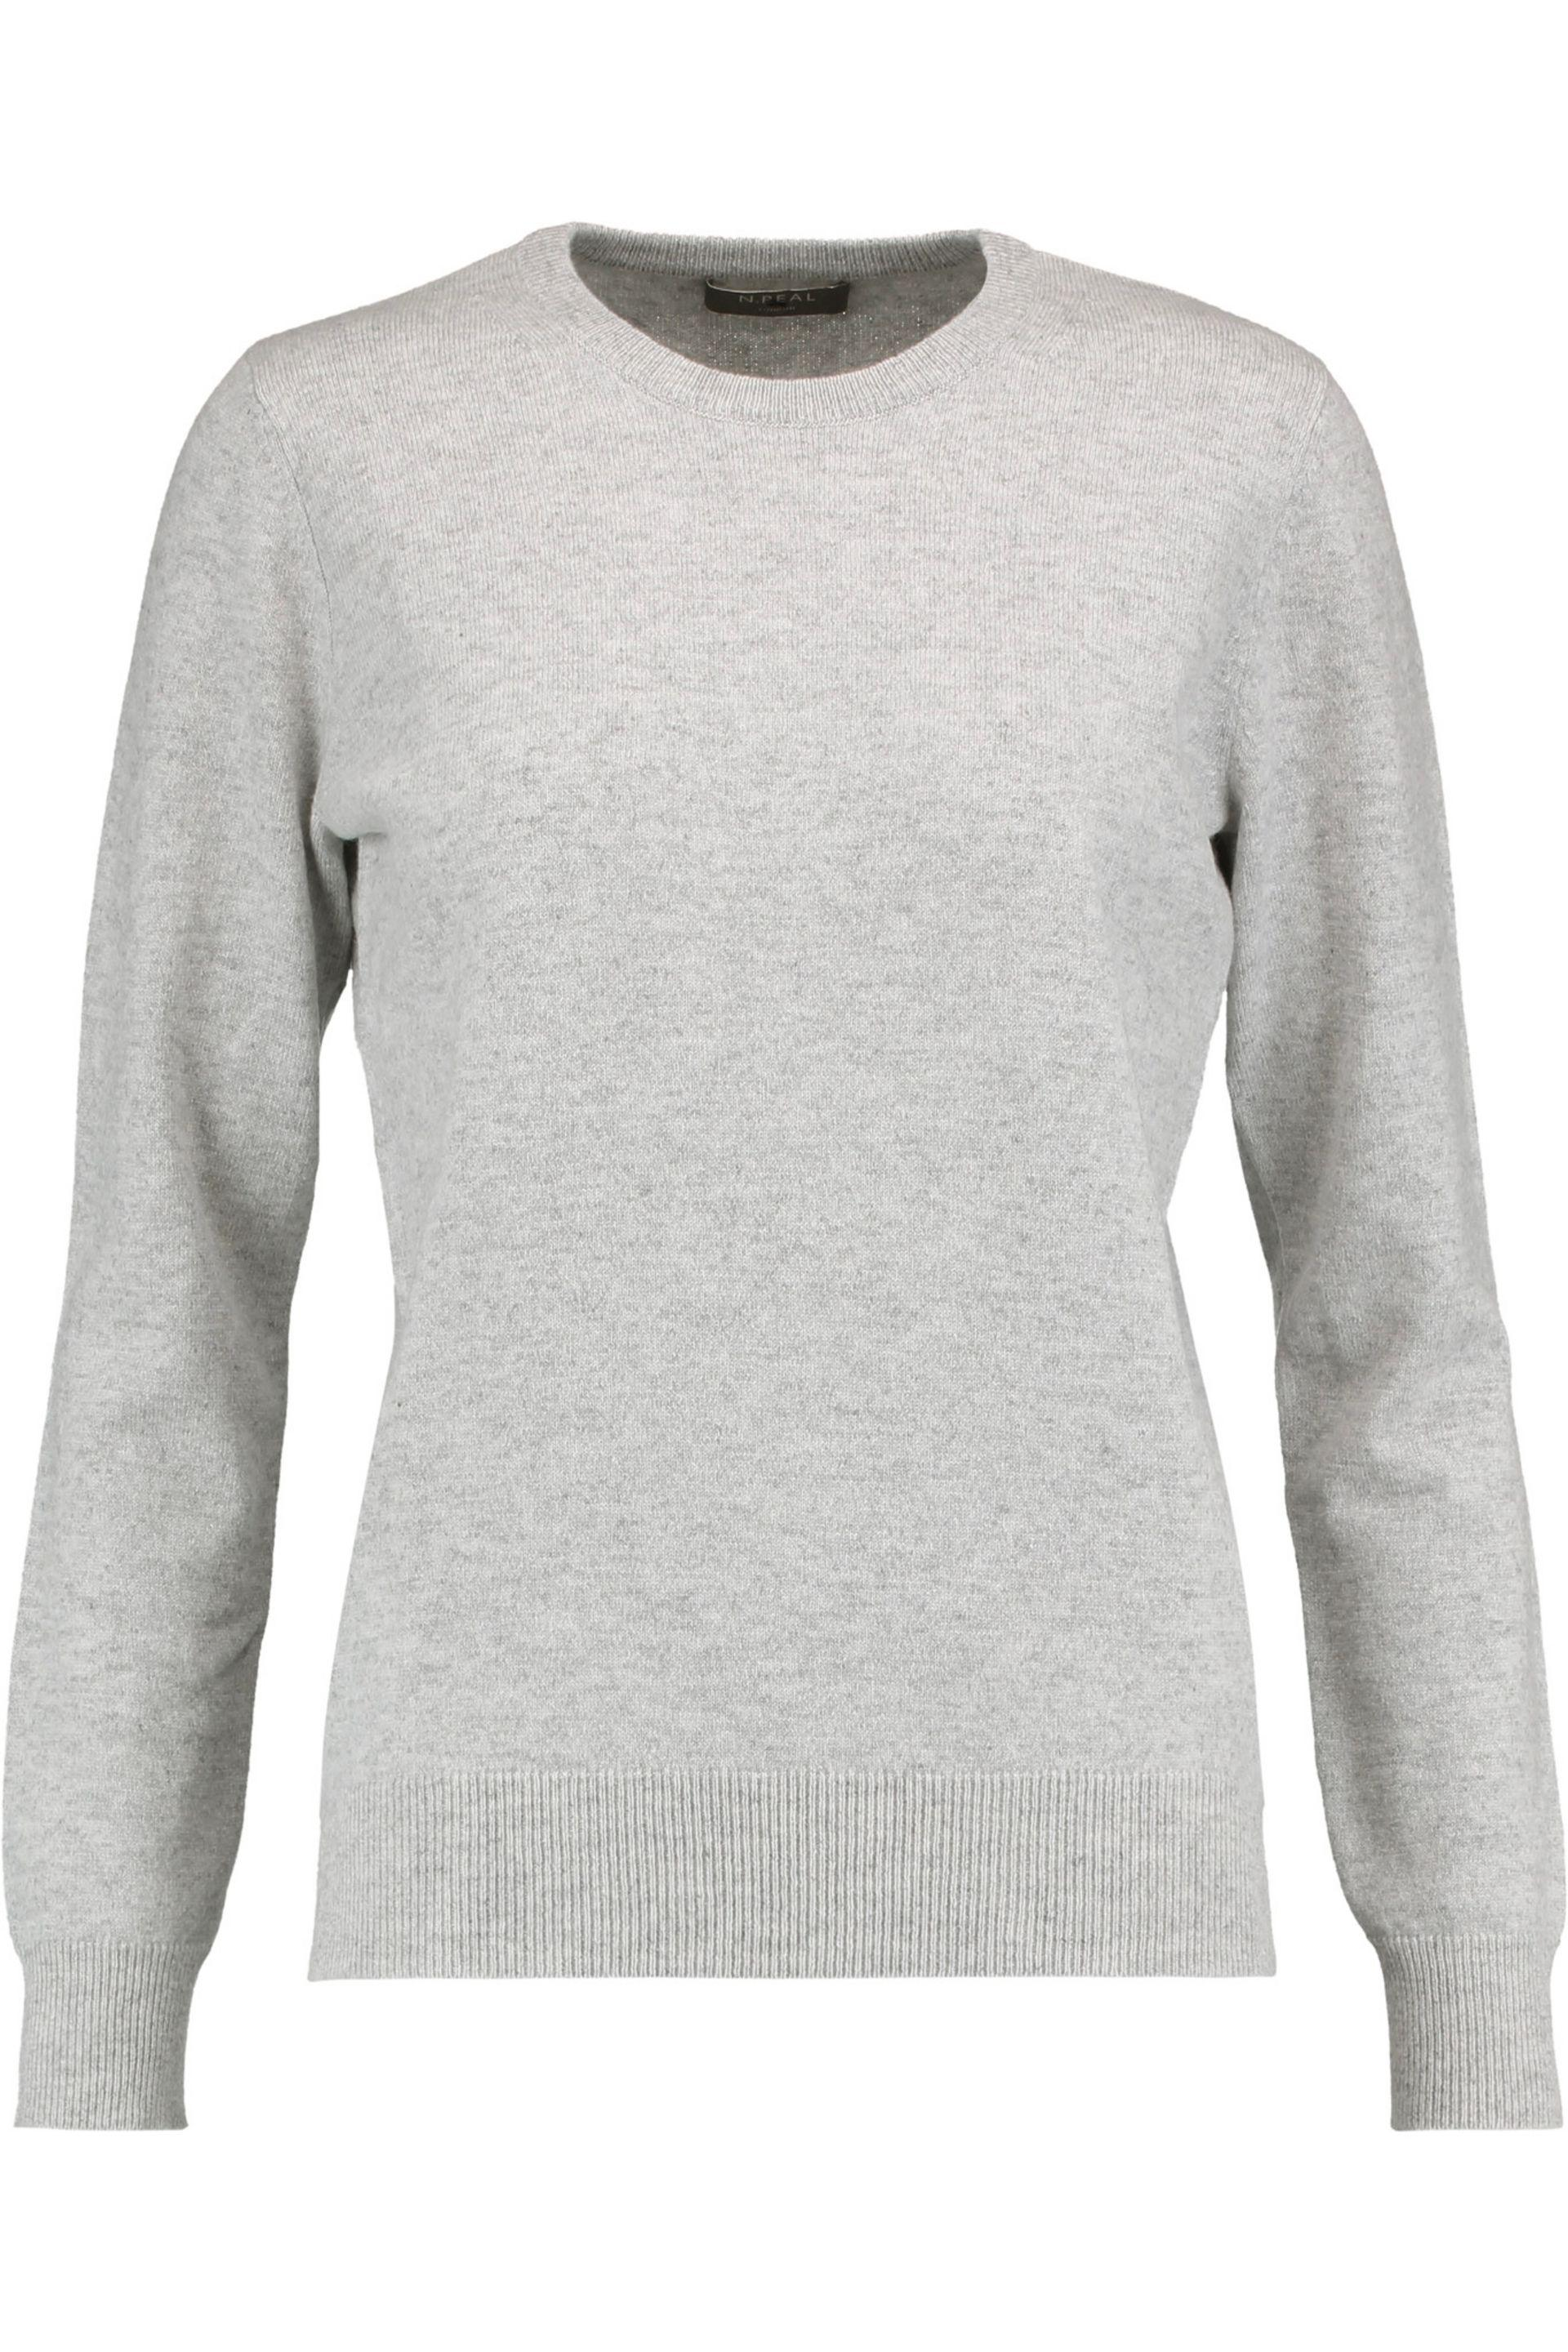 N.peal cashmere Cashmere Sweater in Gray | Lyst